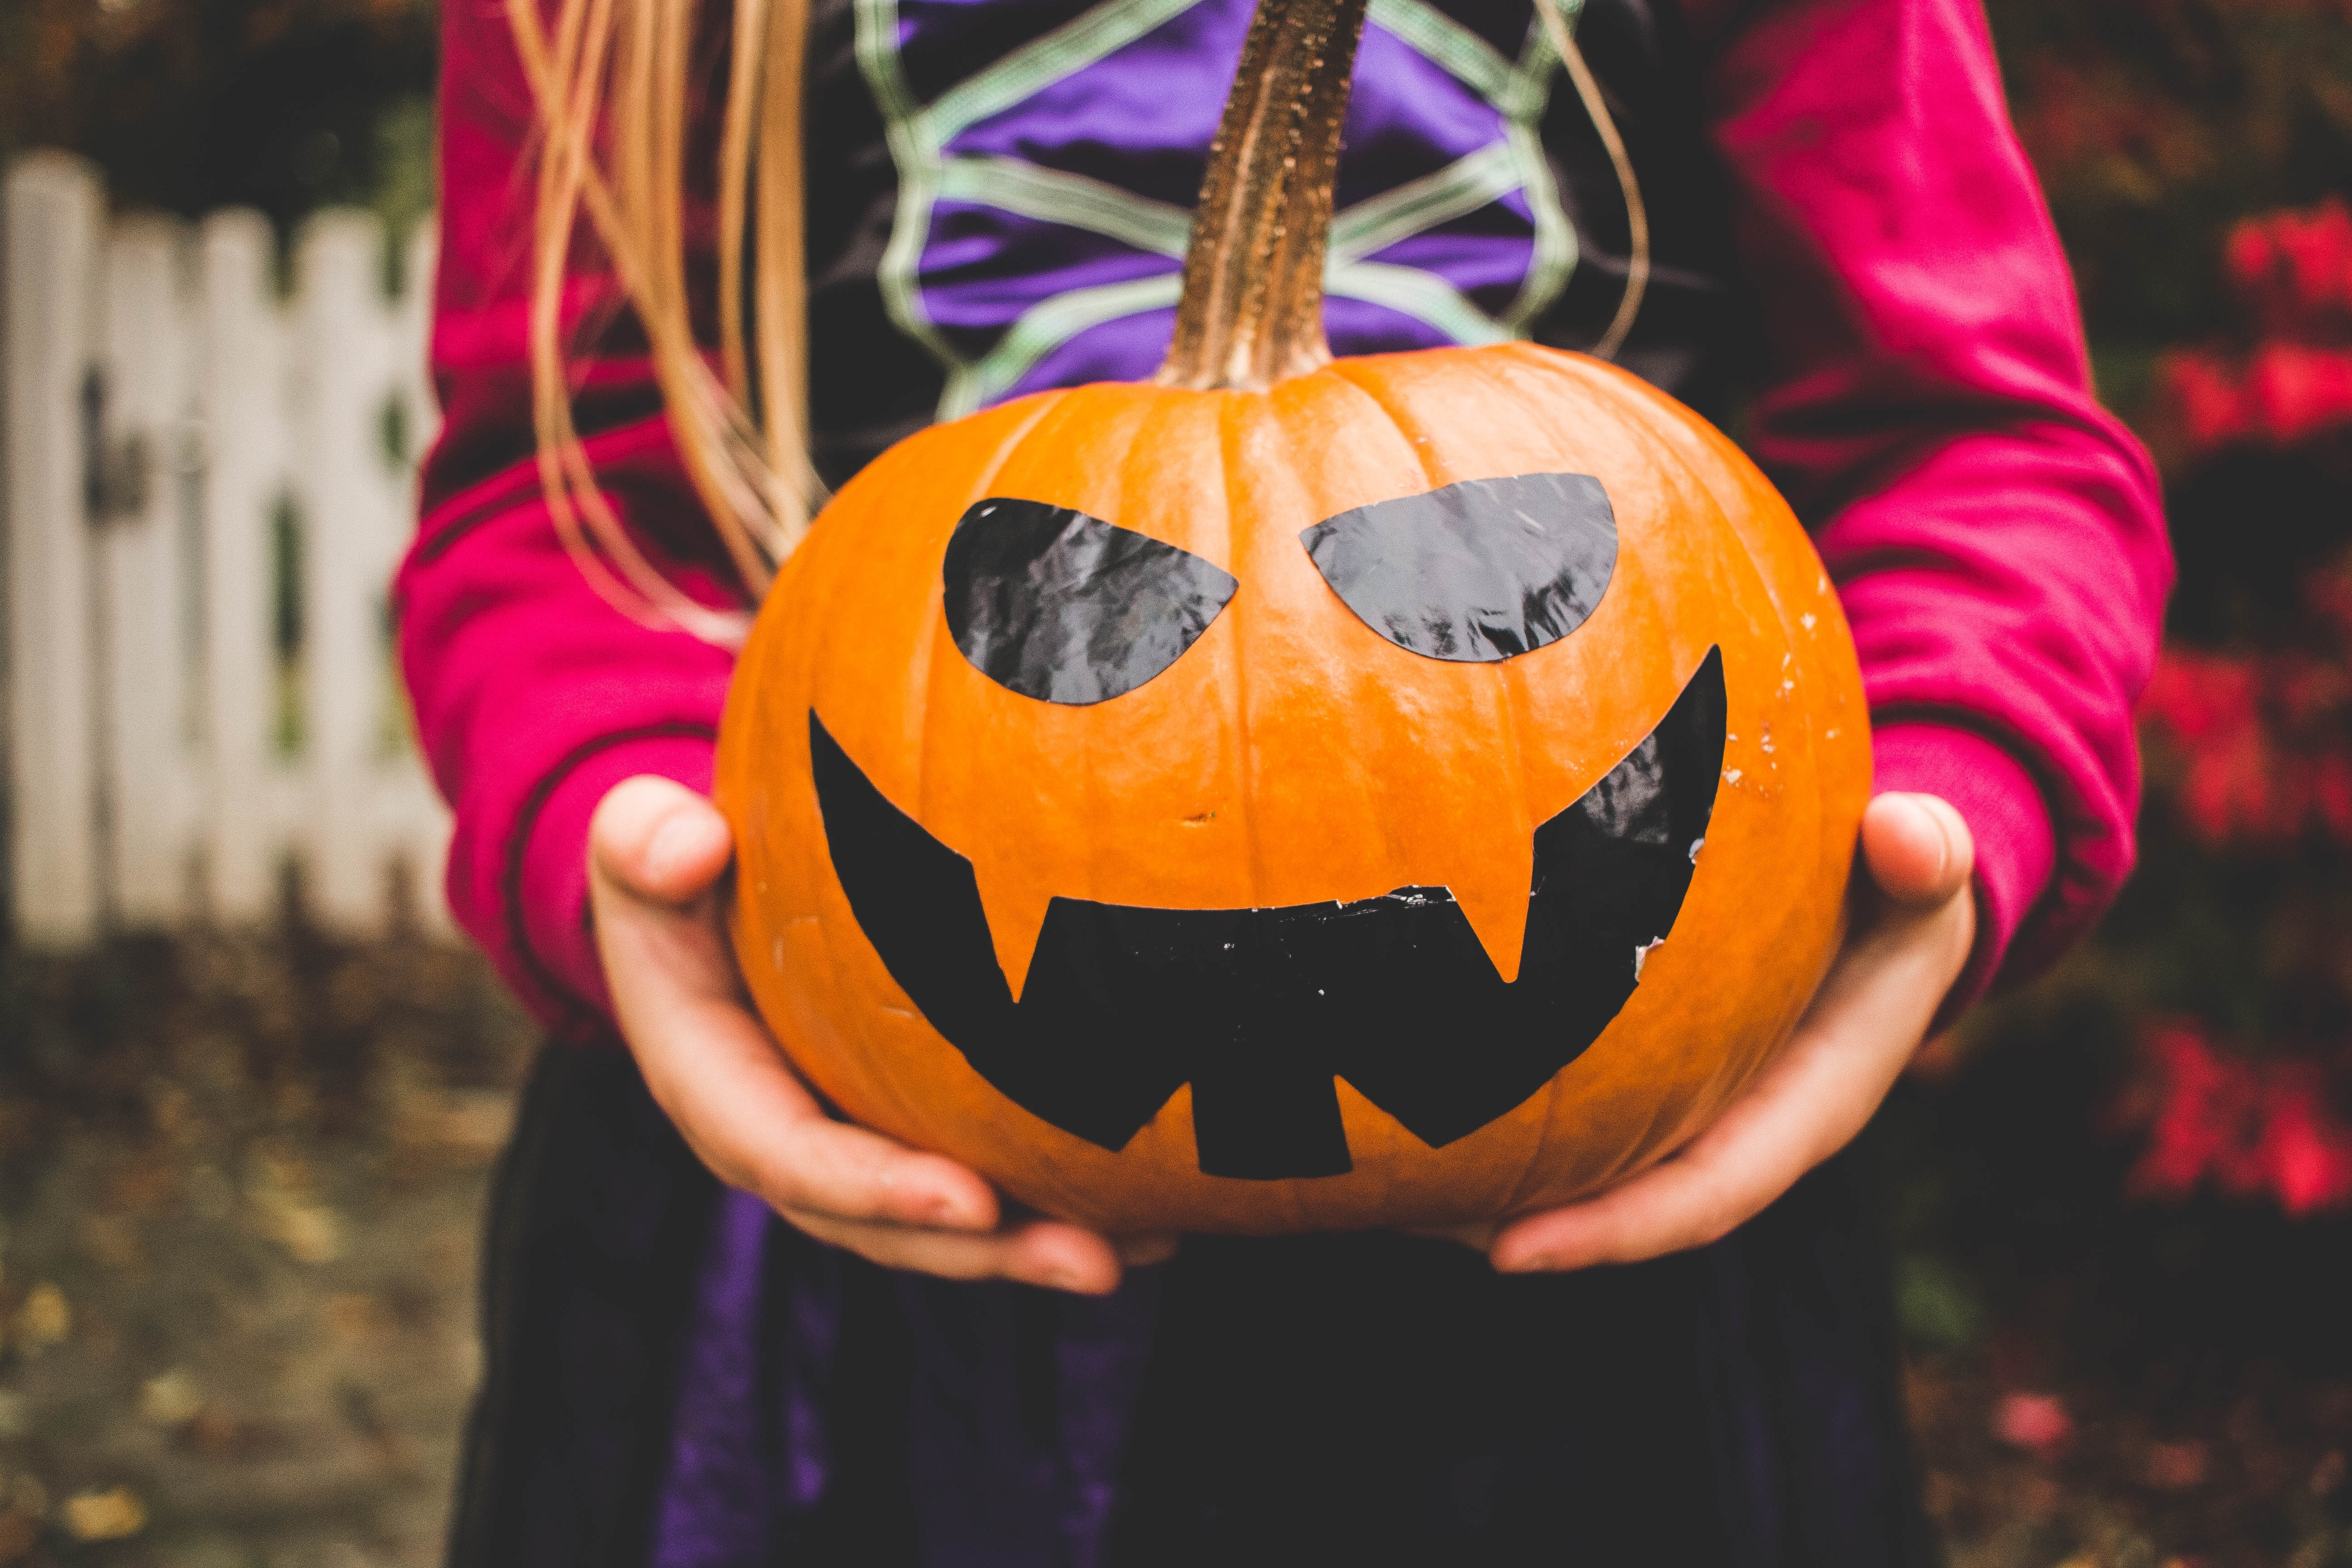 7 halloween facts you probably didn't know - autoknow - safeauto blog